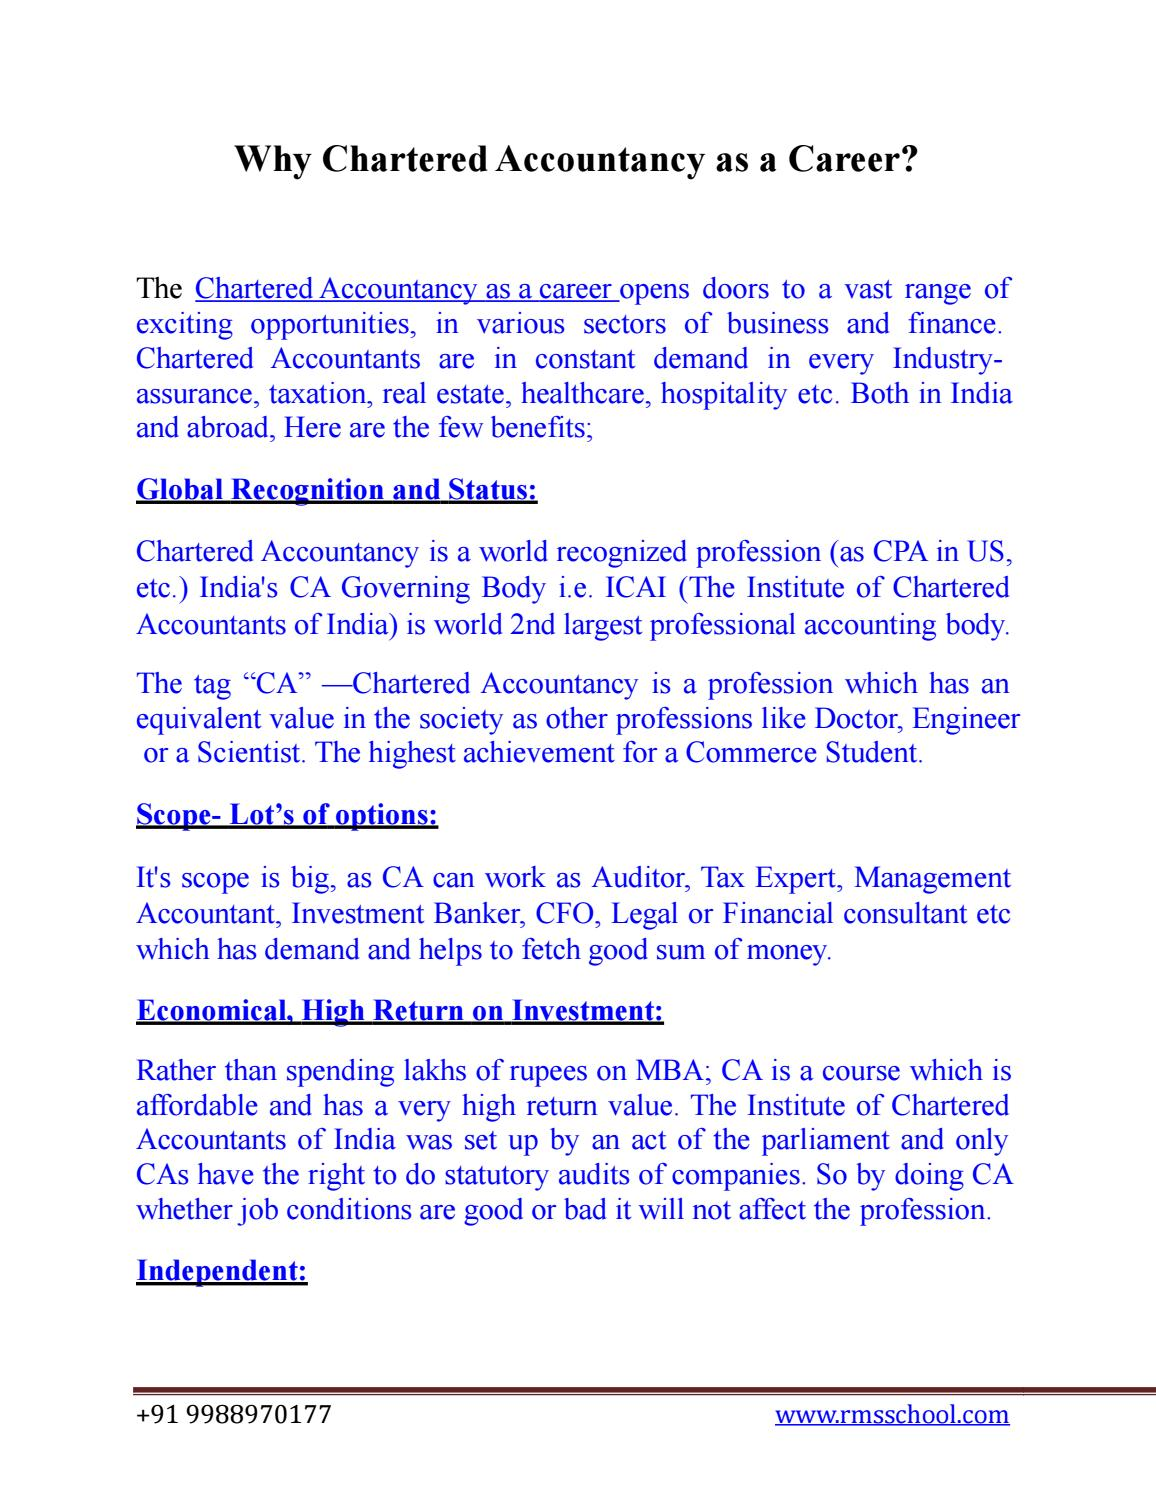 Chartered Accountant Cpa Why Chartered Accountancy As A Career By Rmsinstitute34 Issuu